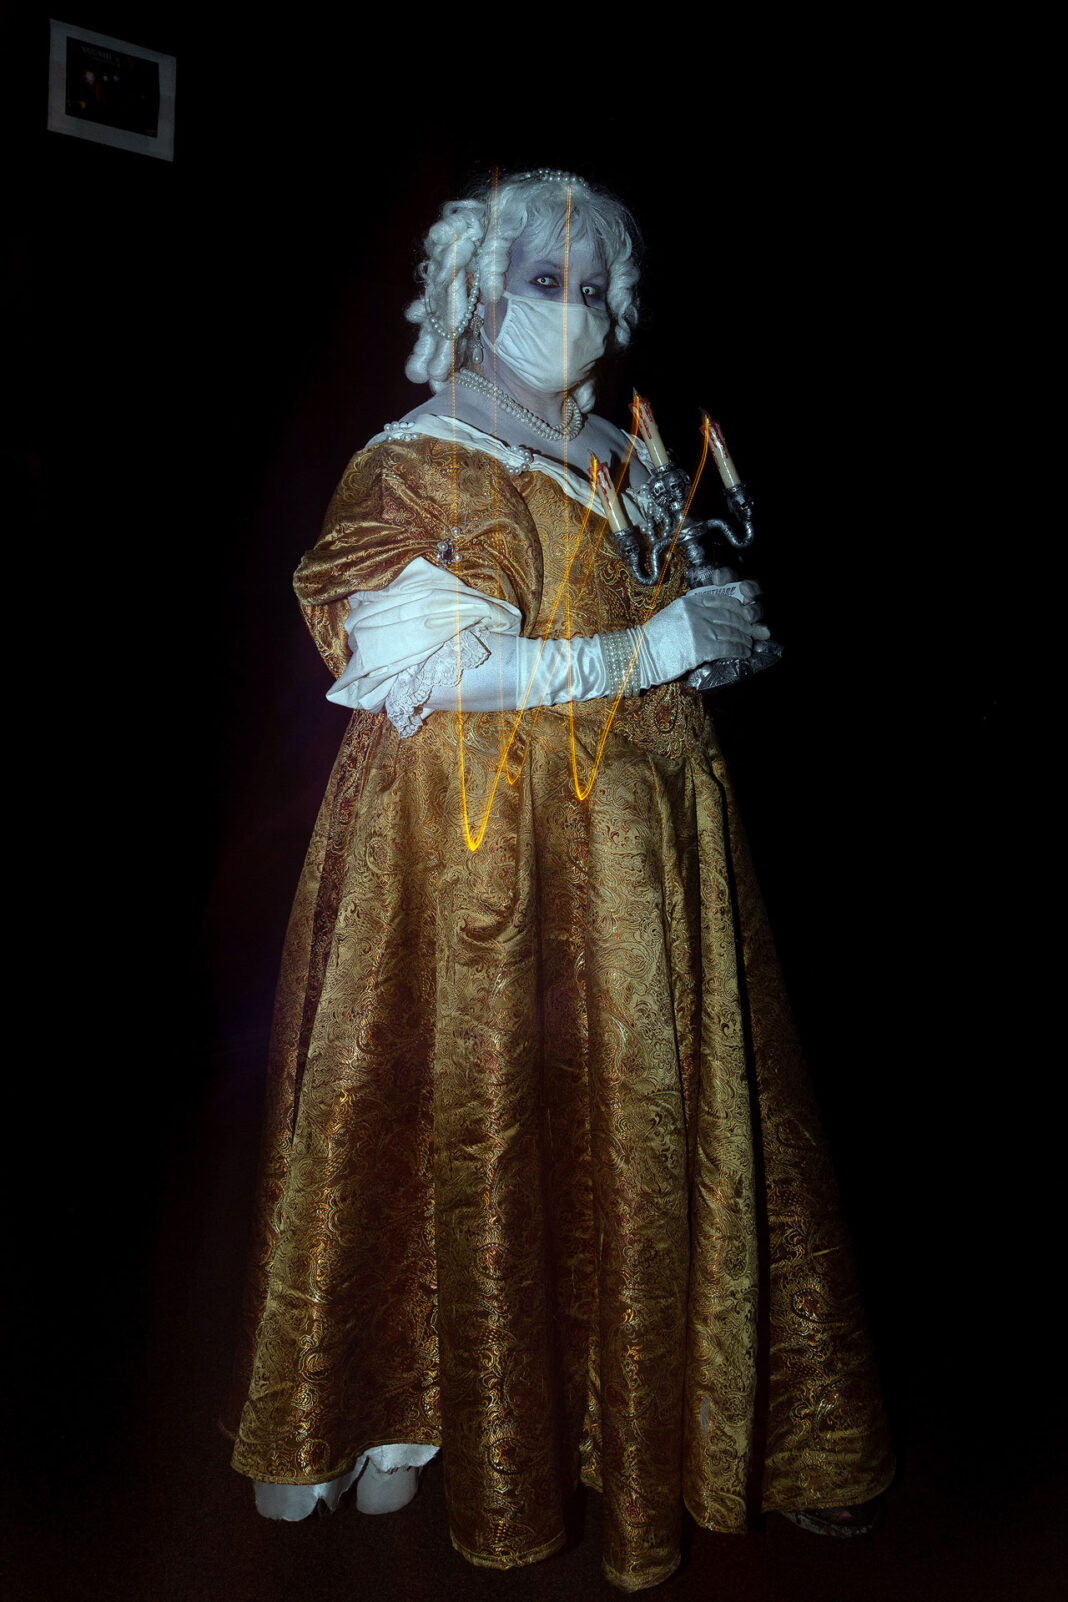 Lady Blanche, wearing a mask, holds a candle